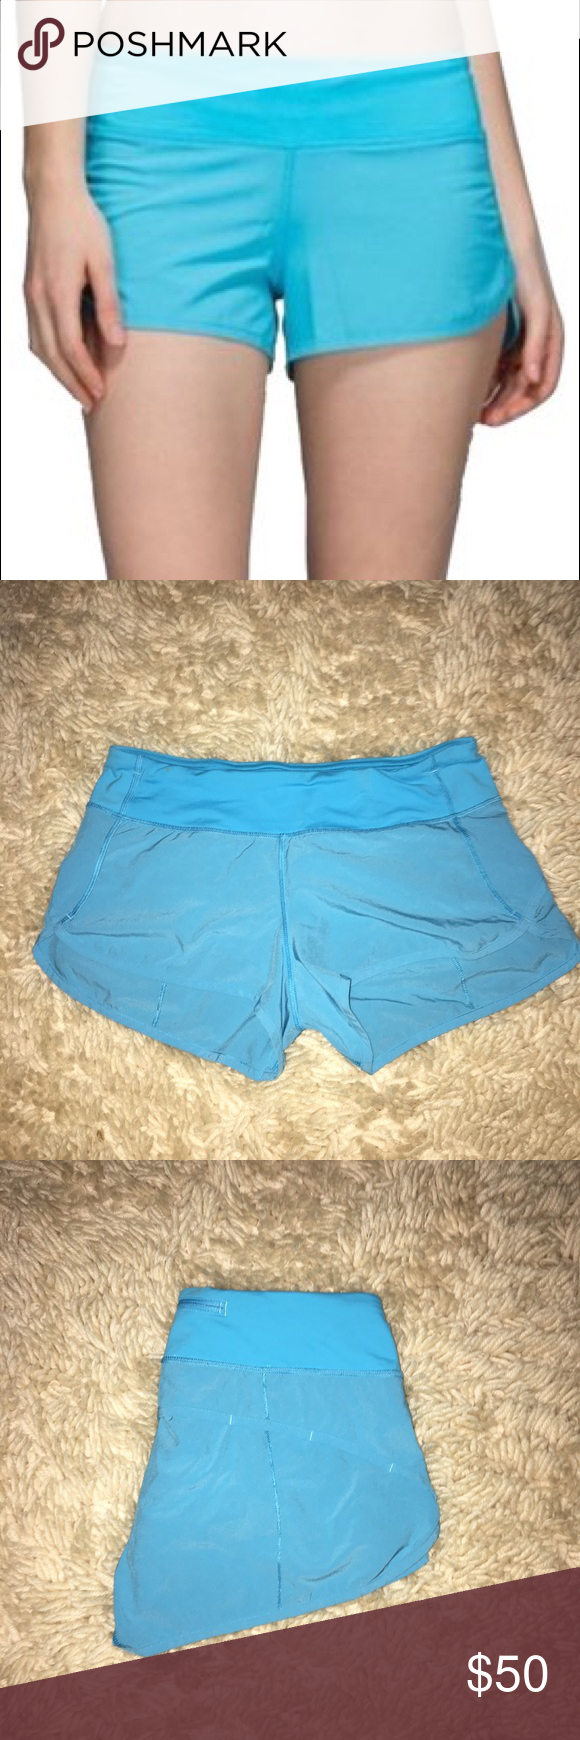 "FLASH SALE!Lululemon speed short 2.5""size 6: OFFER Lululemon speed short 4 way stretch 2.5"" in seam. I haven't lost enough weight to look cute in these. They have only been worn once. Great condition like new. lululemon athletica Shorts"